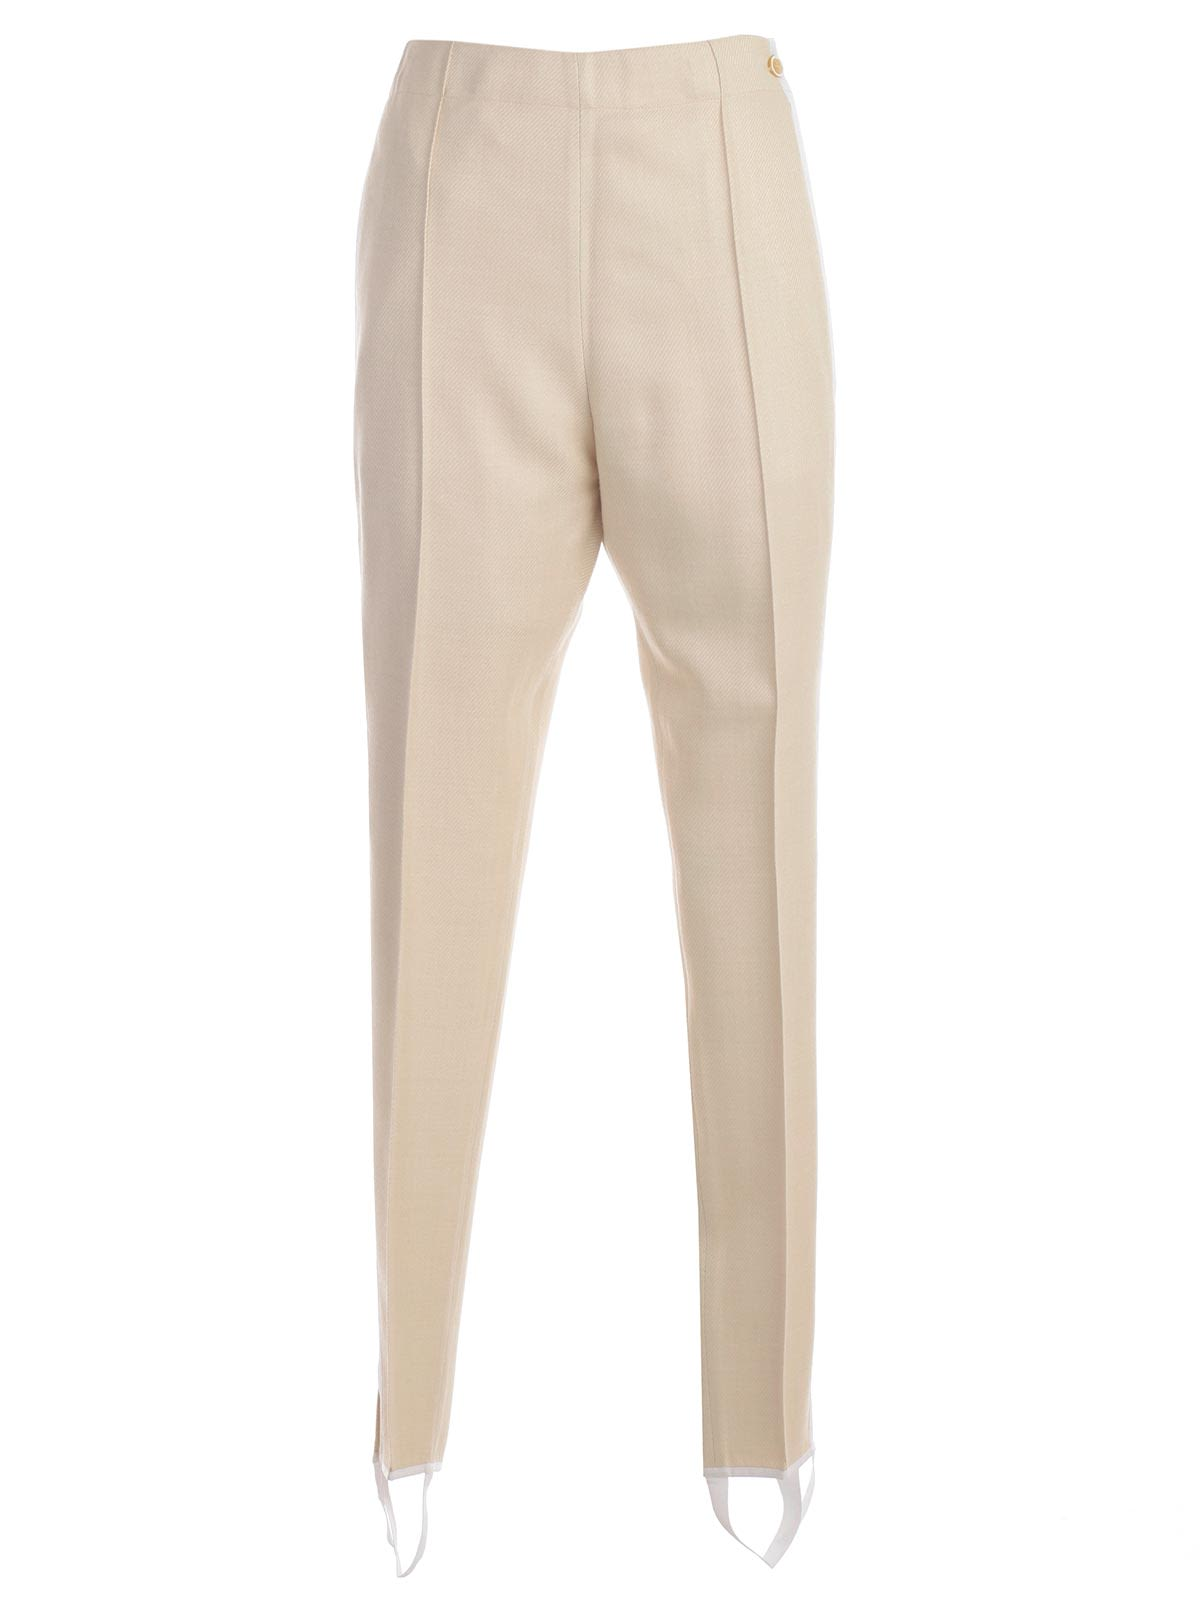 Golden Goose Deluxe Brand Stirrup Trousers